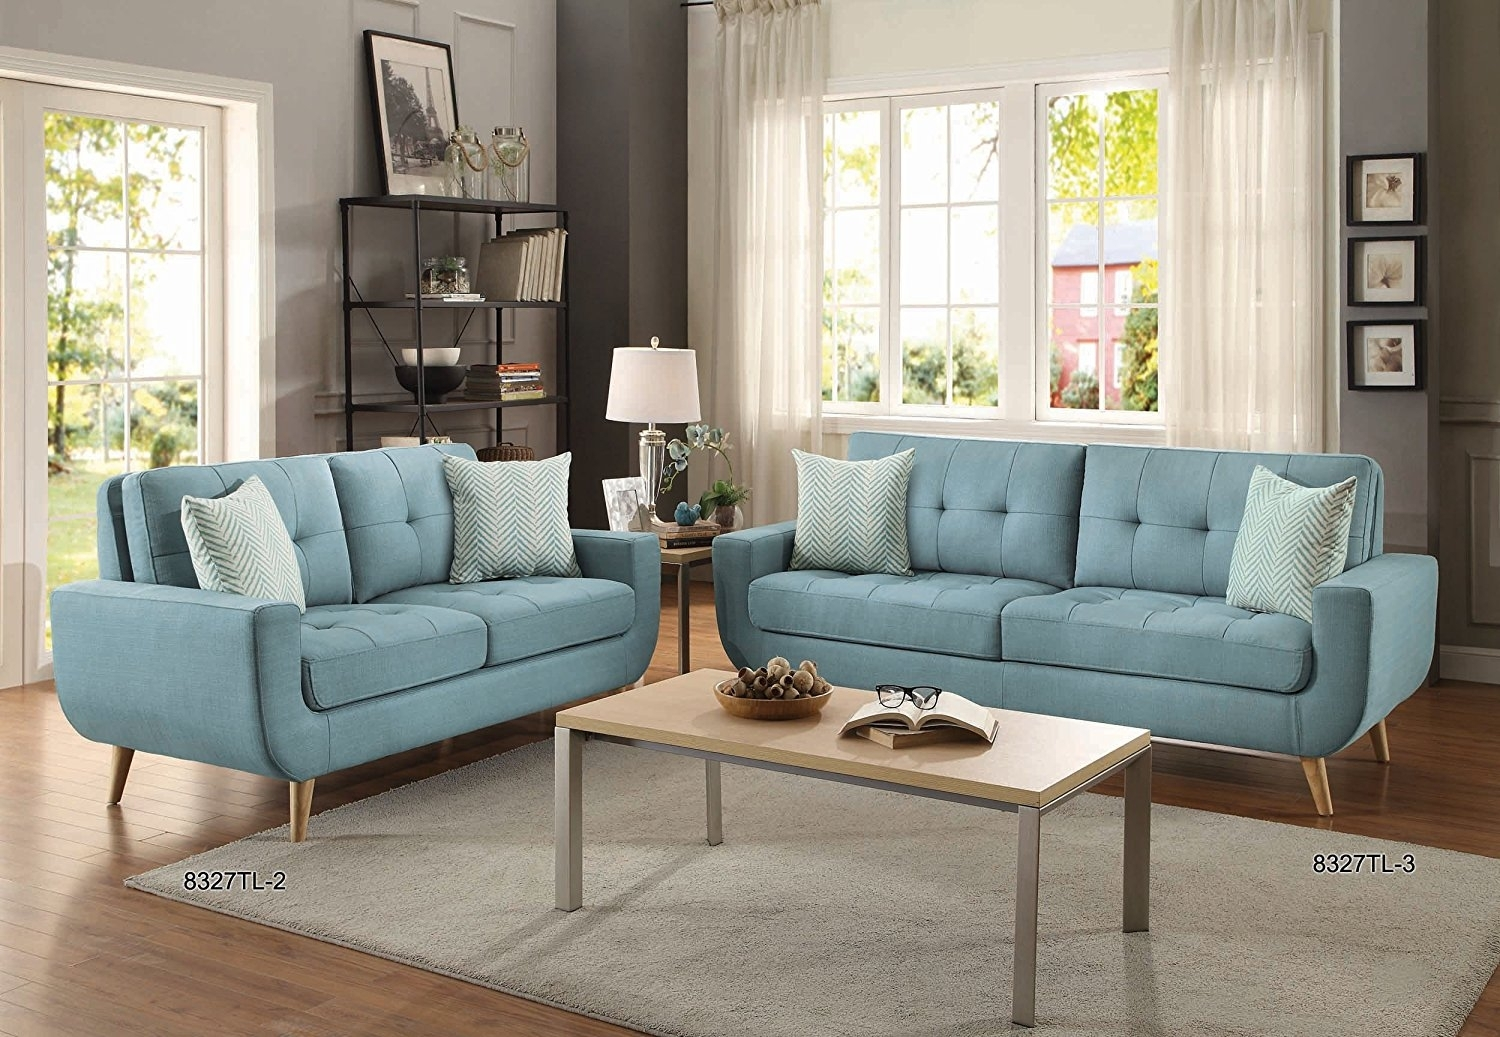 Furniture : Klaussner Hybrid Sofa Sofa Sale January Klaussner with Sectional Sofas at Barrie (Image 11 of 15)